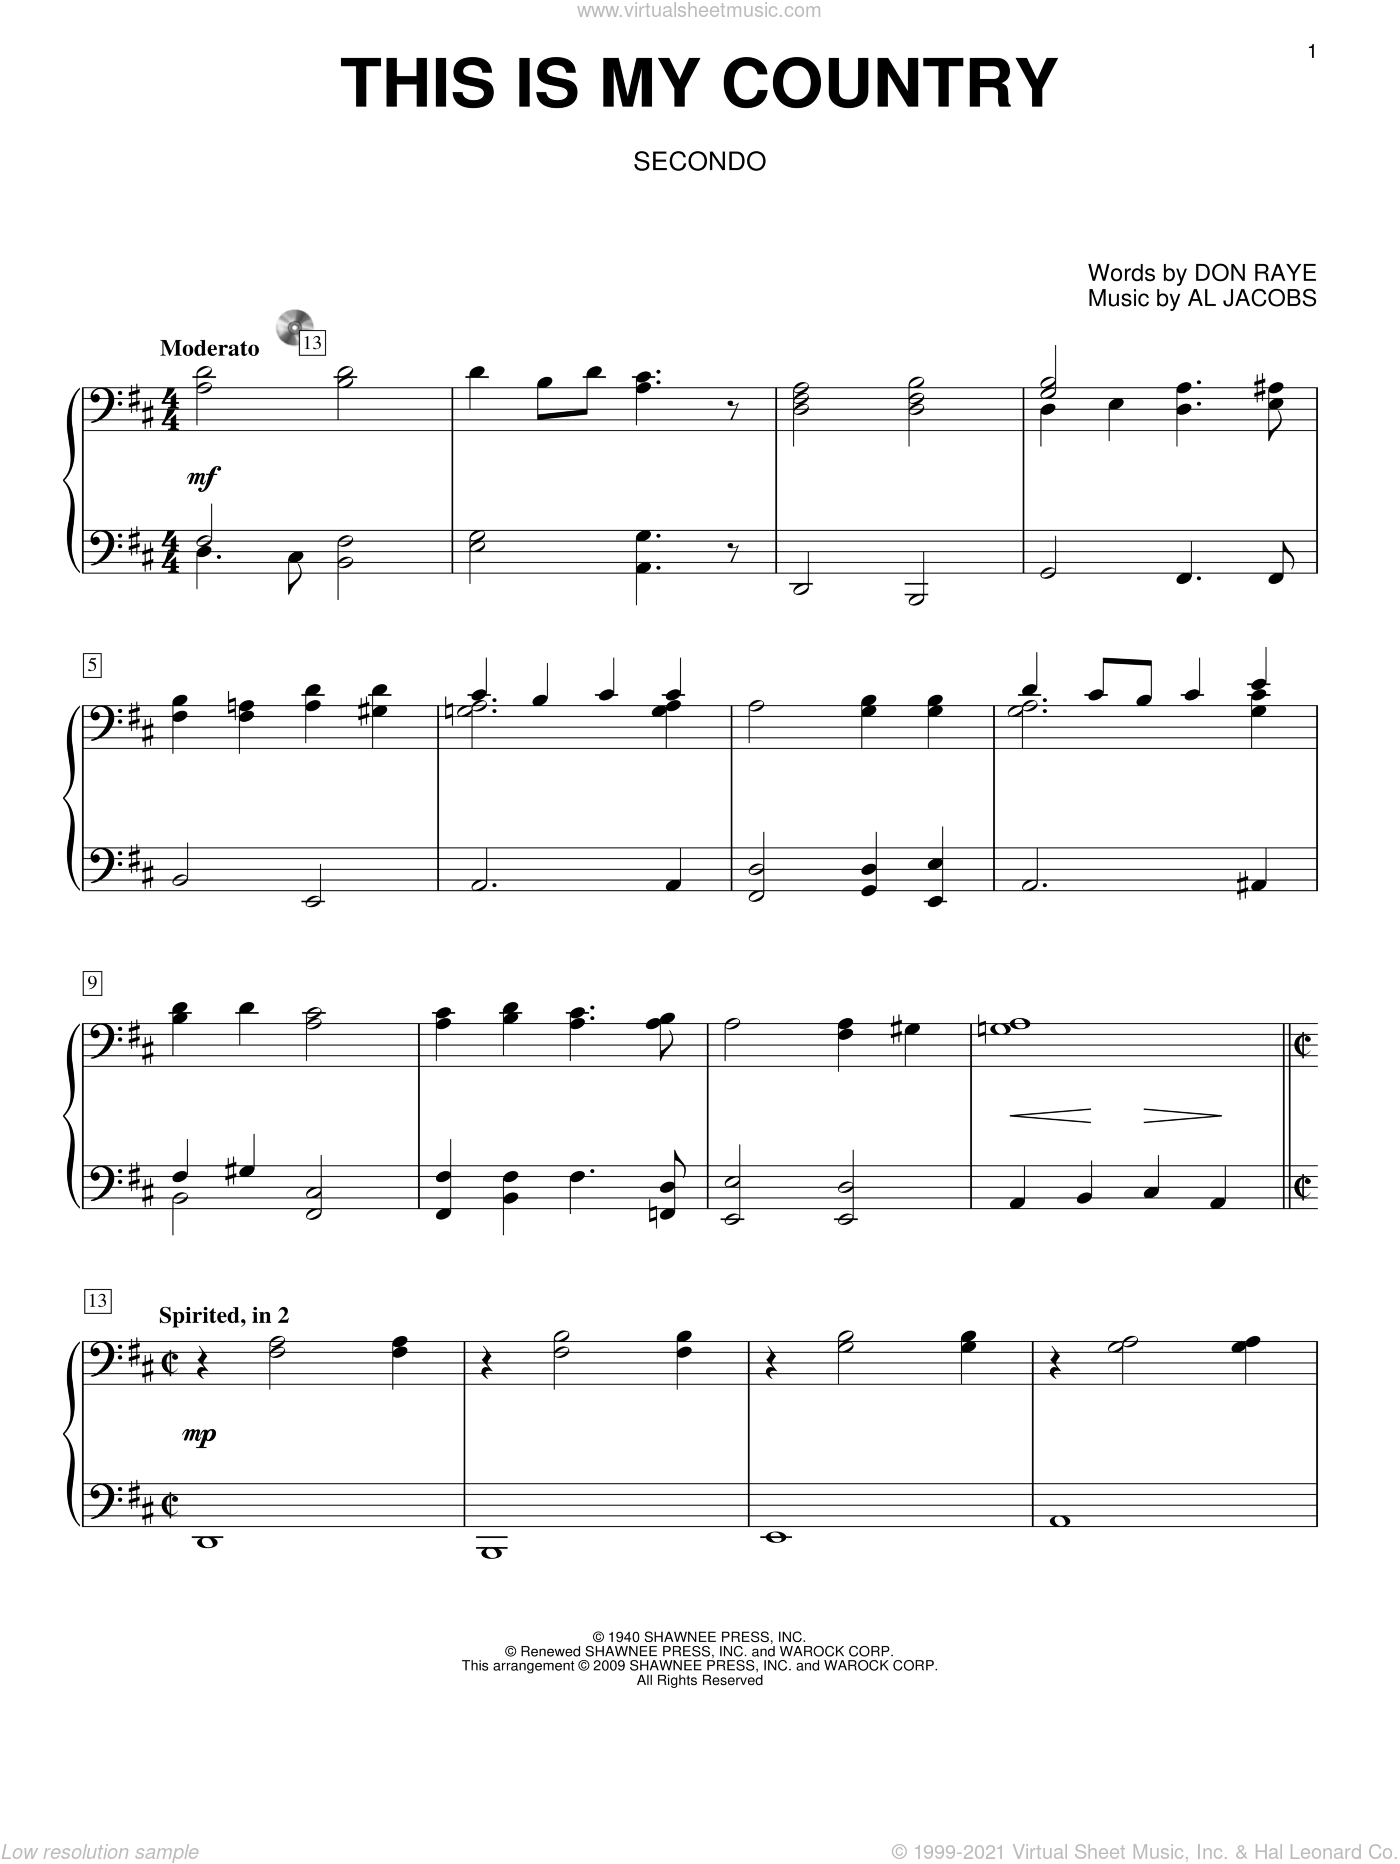 This Is My Country sheet music for piano four hands by Tennessee Ernie Ford, Al Jacobs and Don Raye, intermediate skill level